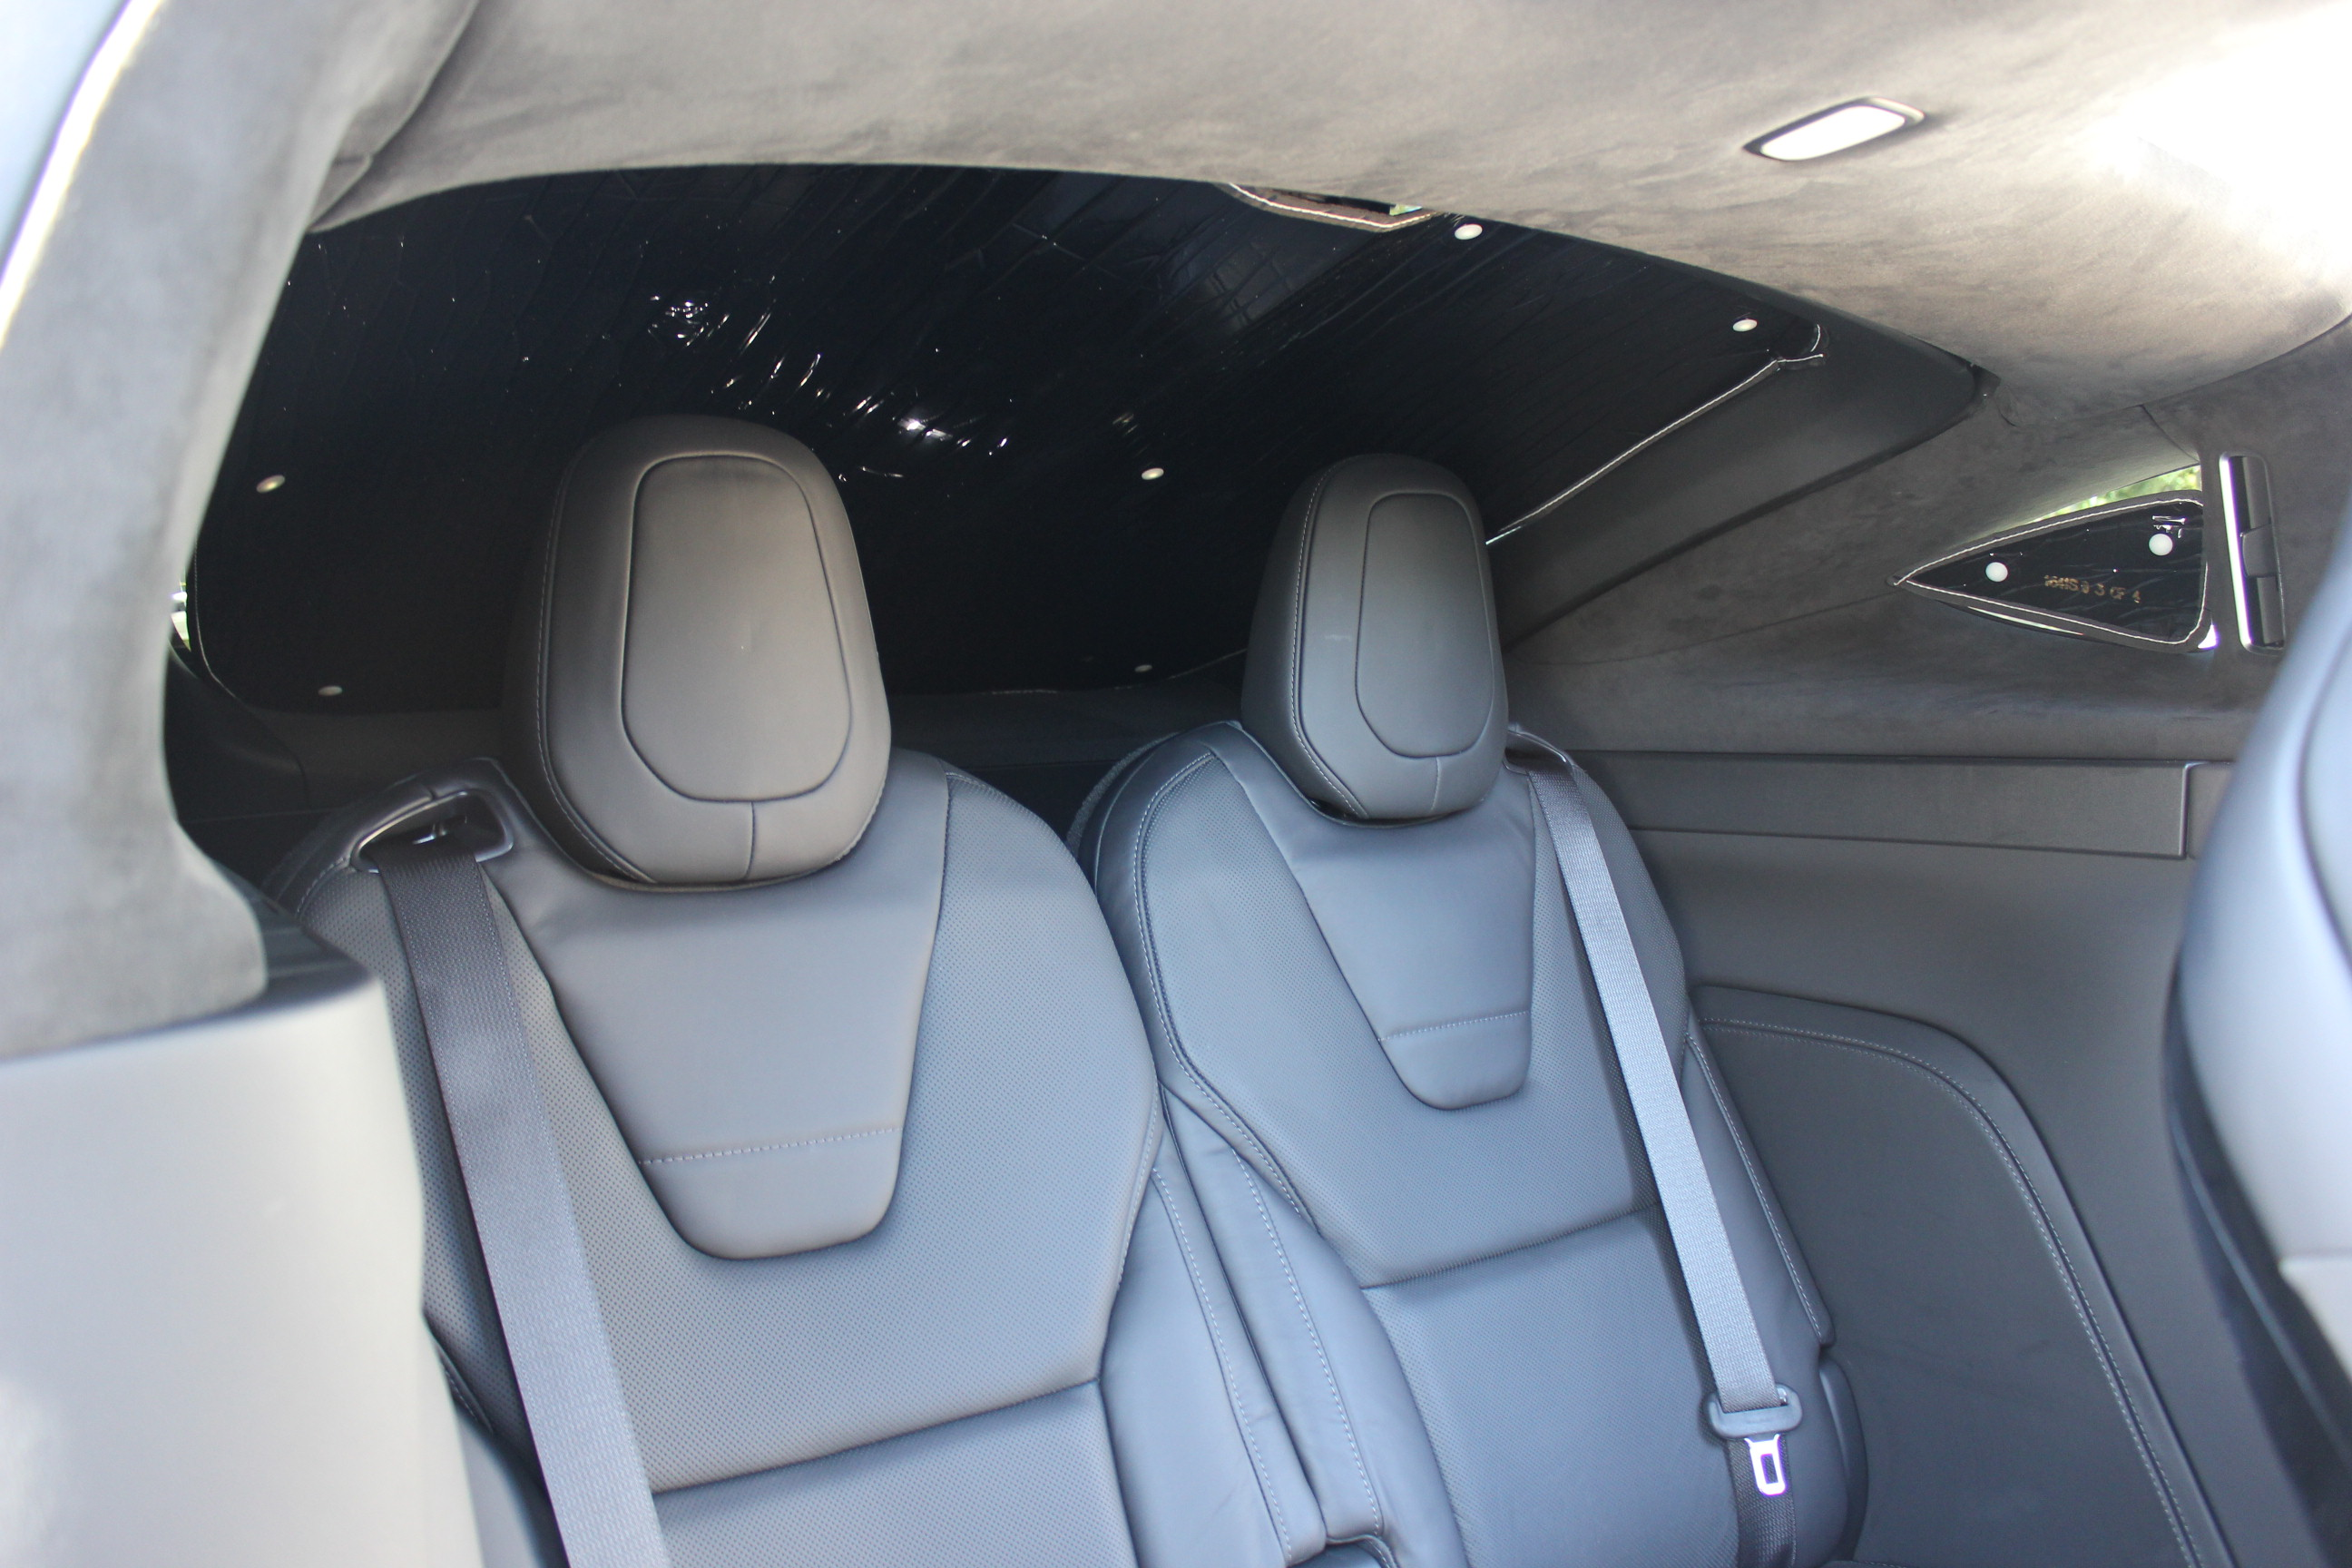 How To Blackout Tesla Model X Windows Using Sunshades By